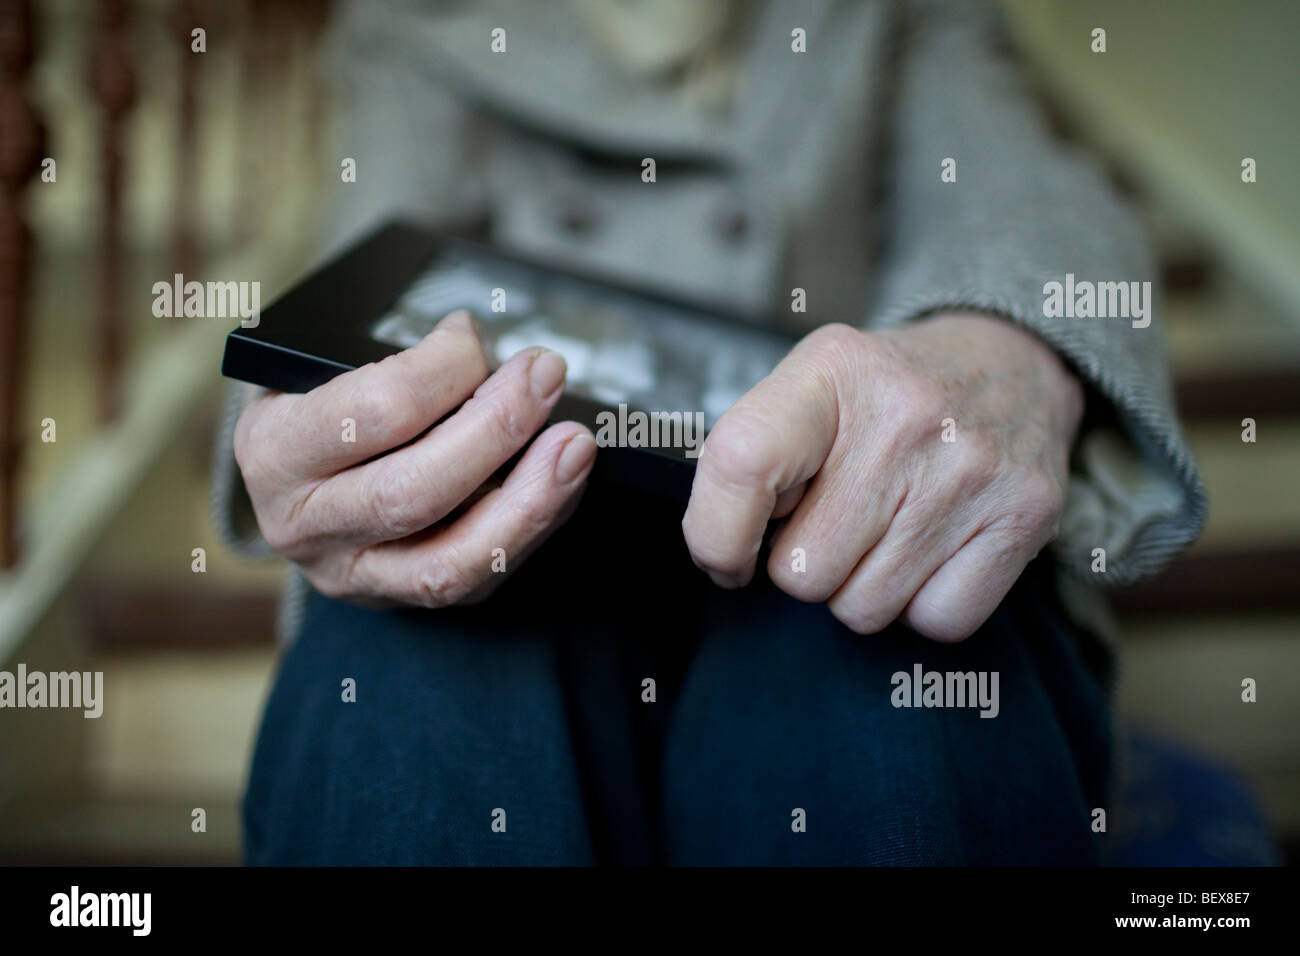 Senior with Dementia - Stock Image